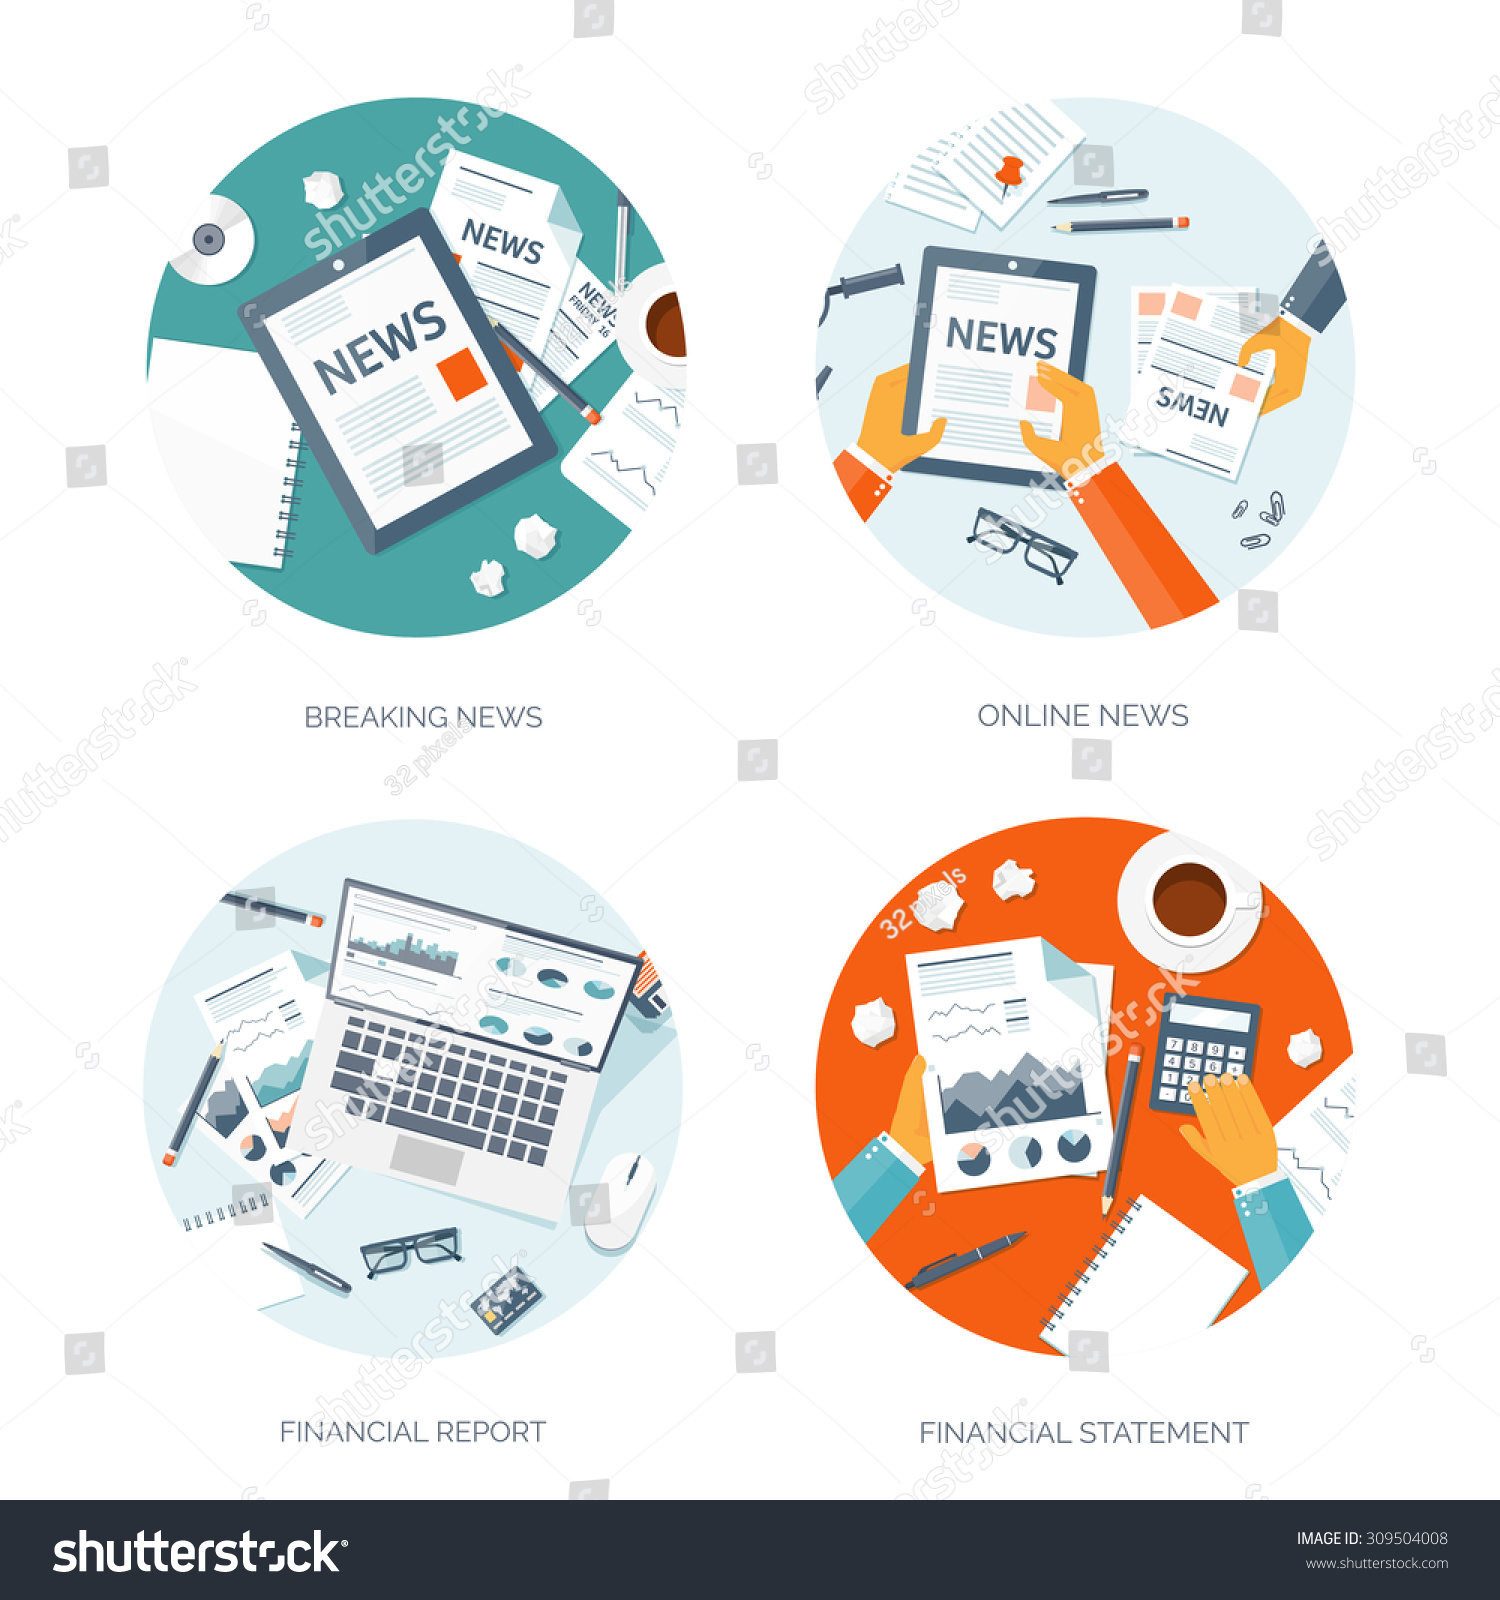 Flat Background Vector Illustration Financial Statement – Daily Financial Report